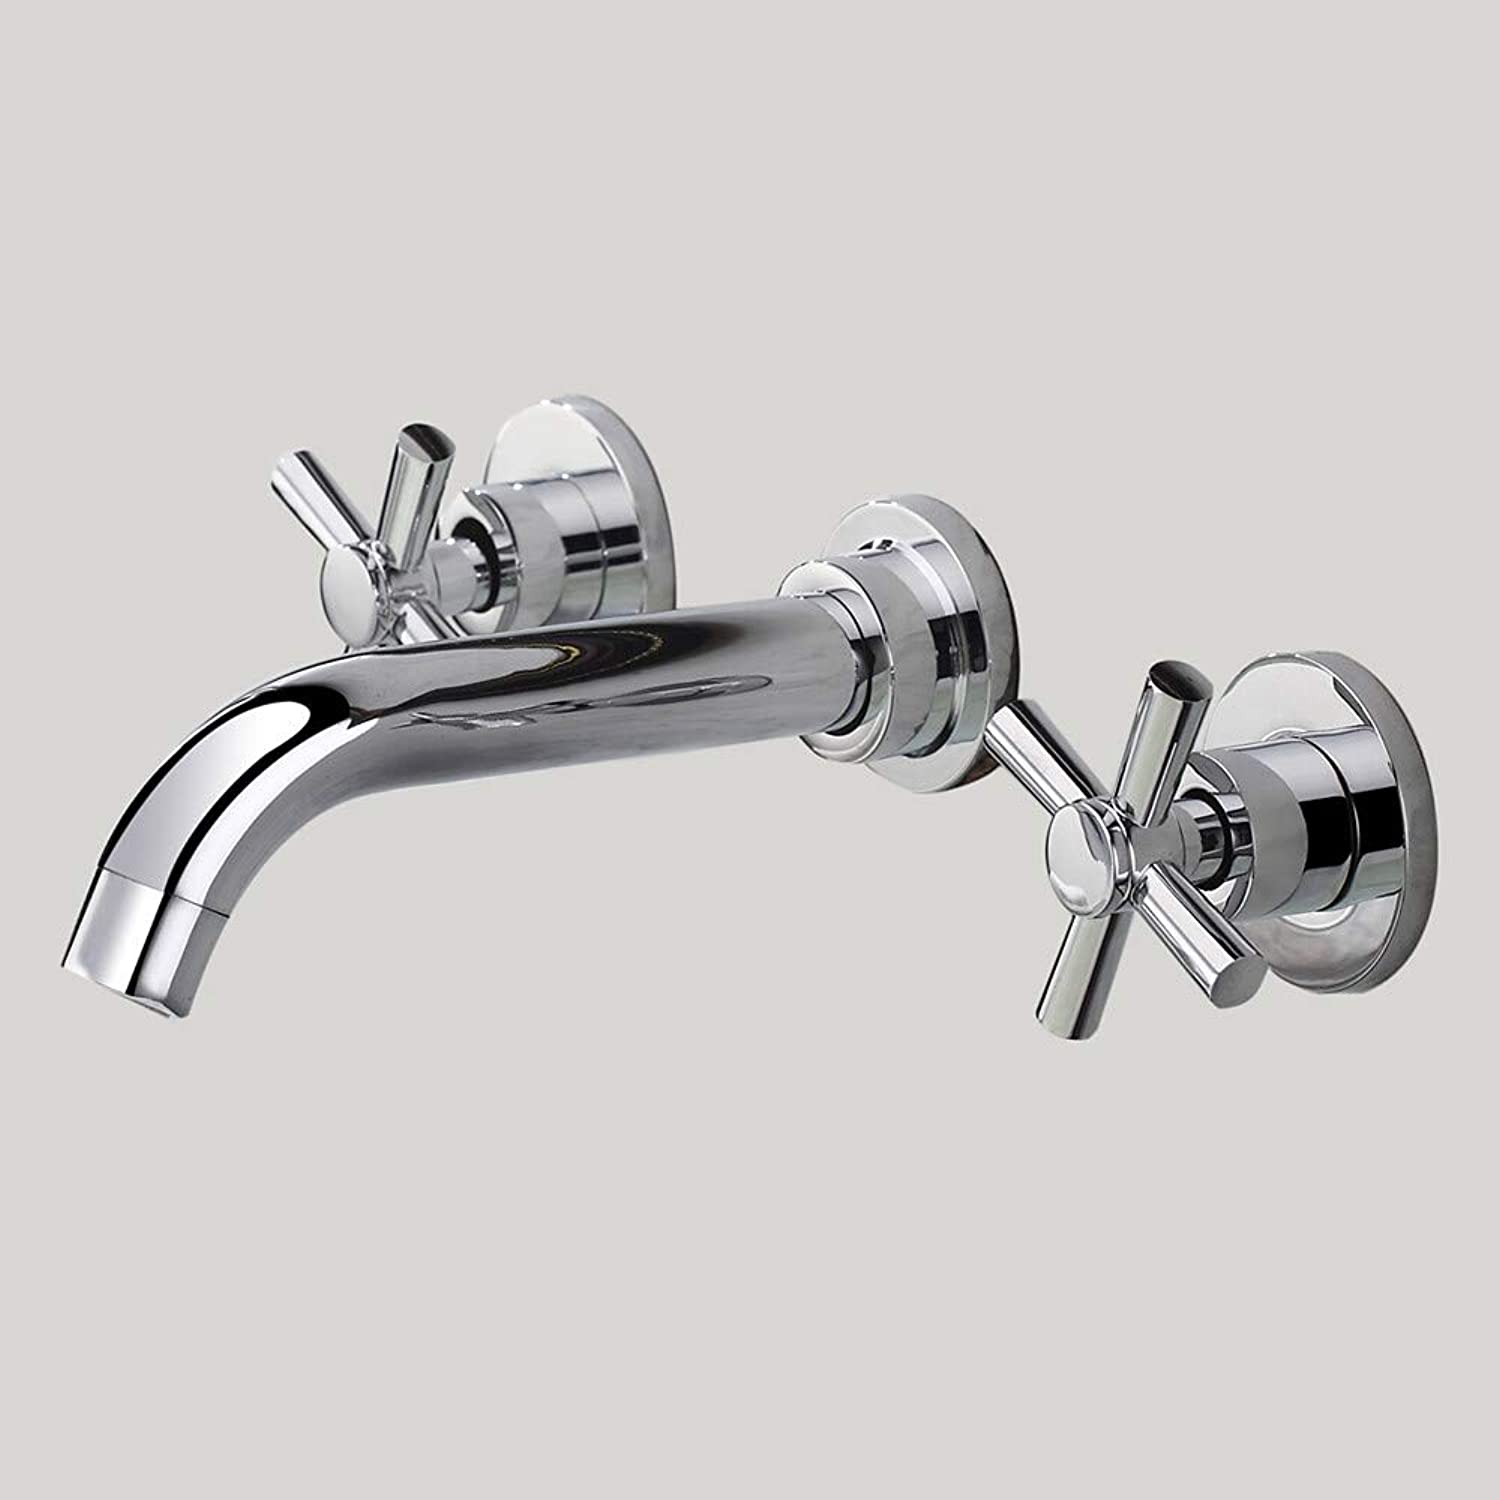 Fire wolf Bathroom faucet:Contemporary Wall Mounted Widespread Wall Mount with Brass Valve Two Handles Three Holes for Chrome, Bathroom Sink Faucet,1